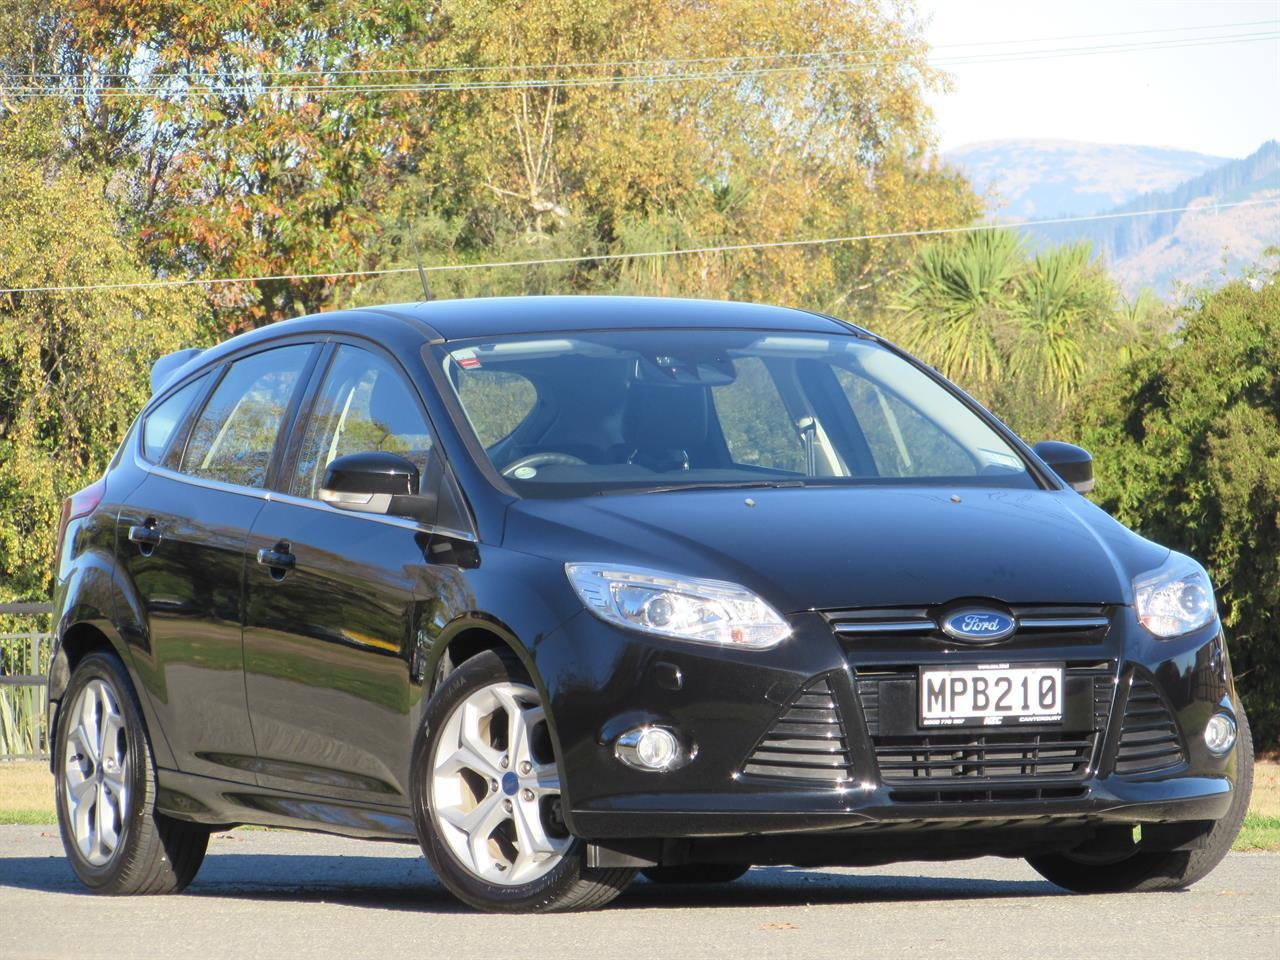 image-0, 2013 Ford Focus at Christchurch